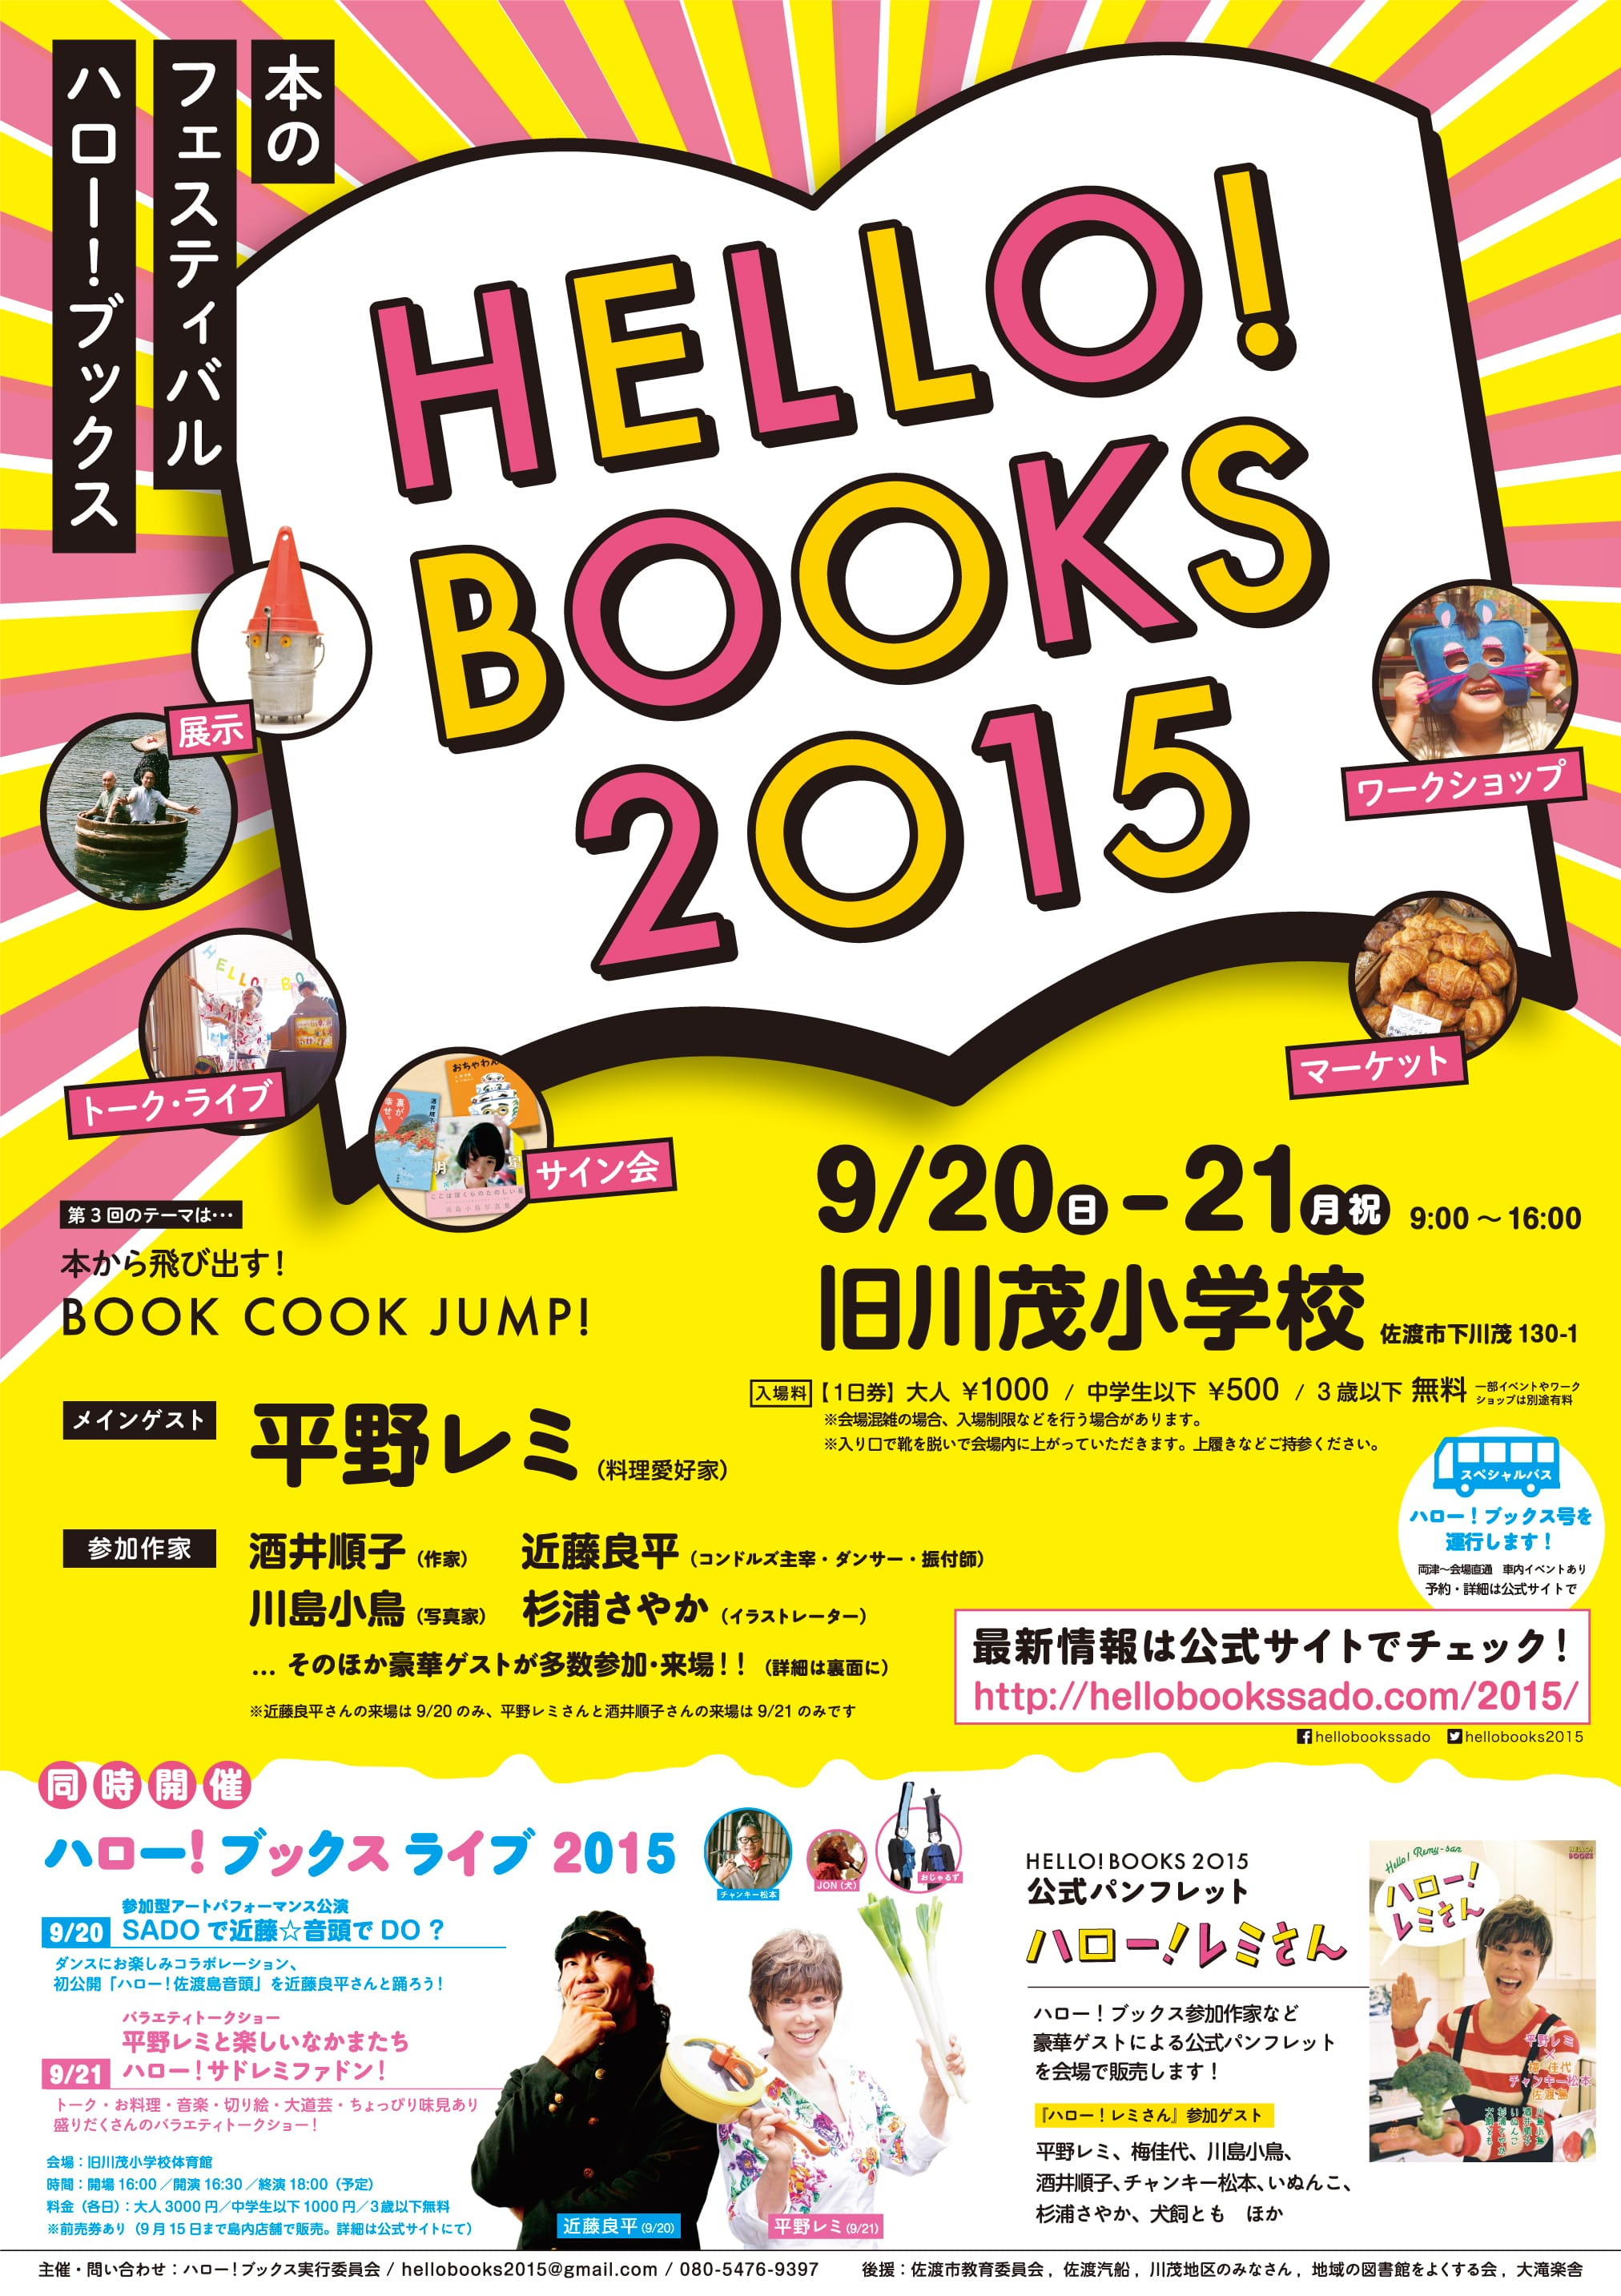 hello!books2015